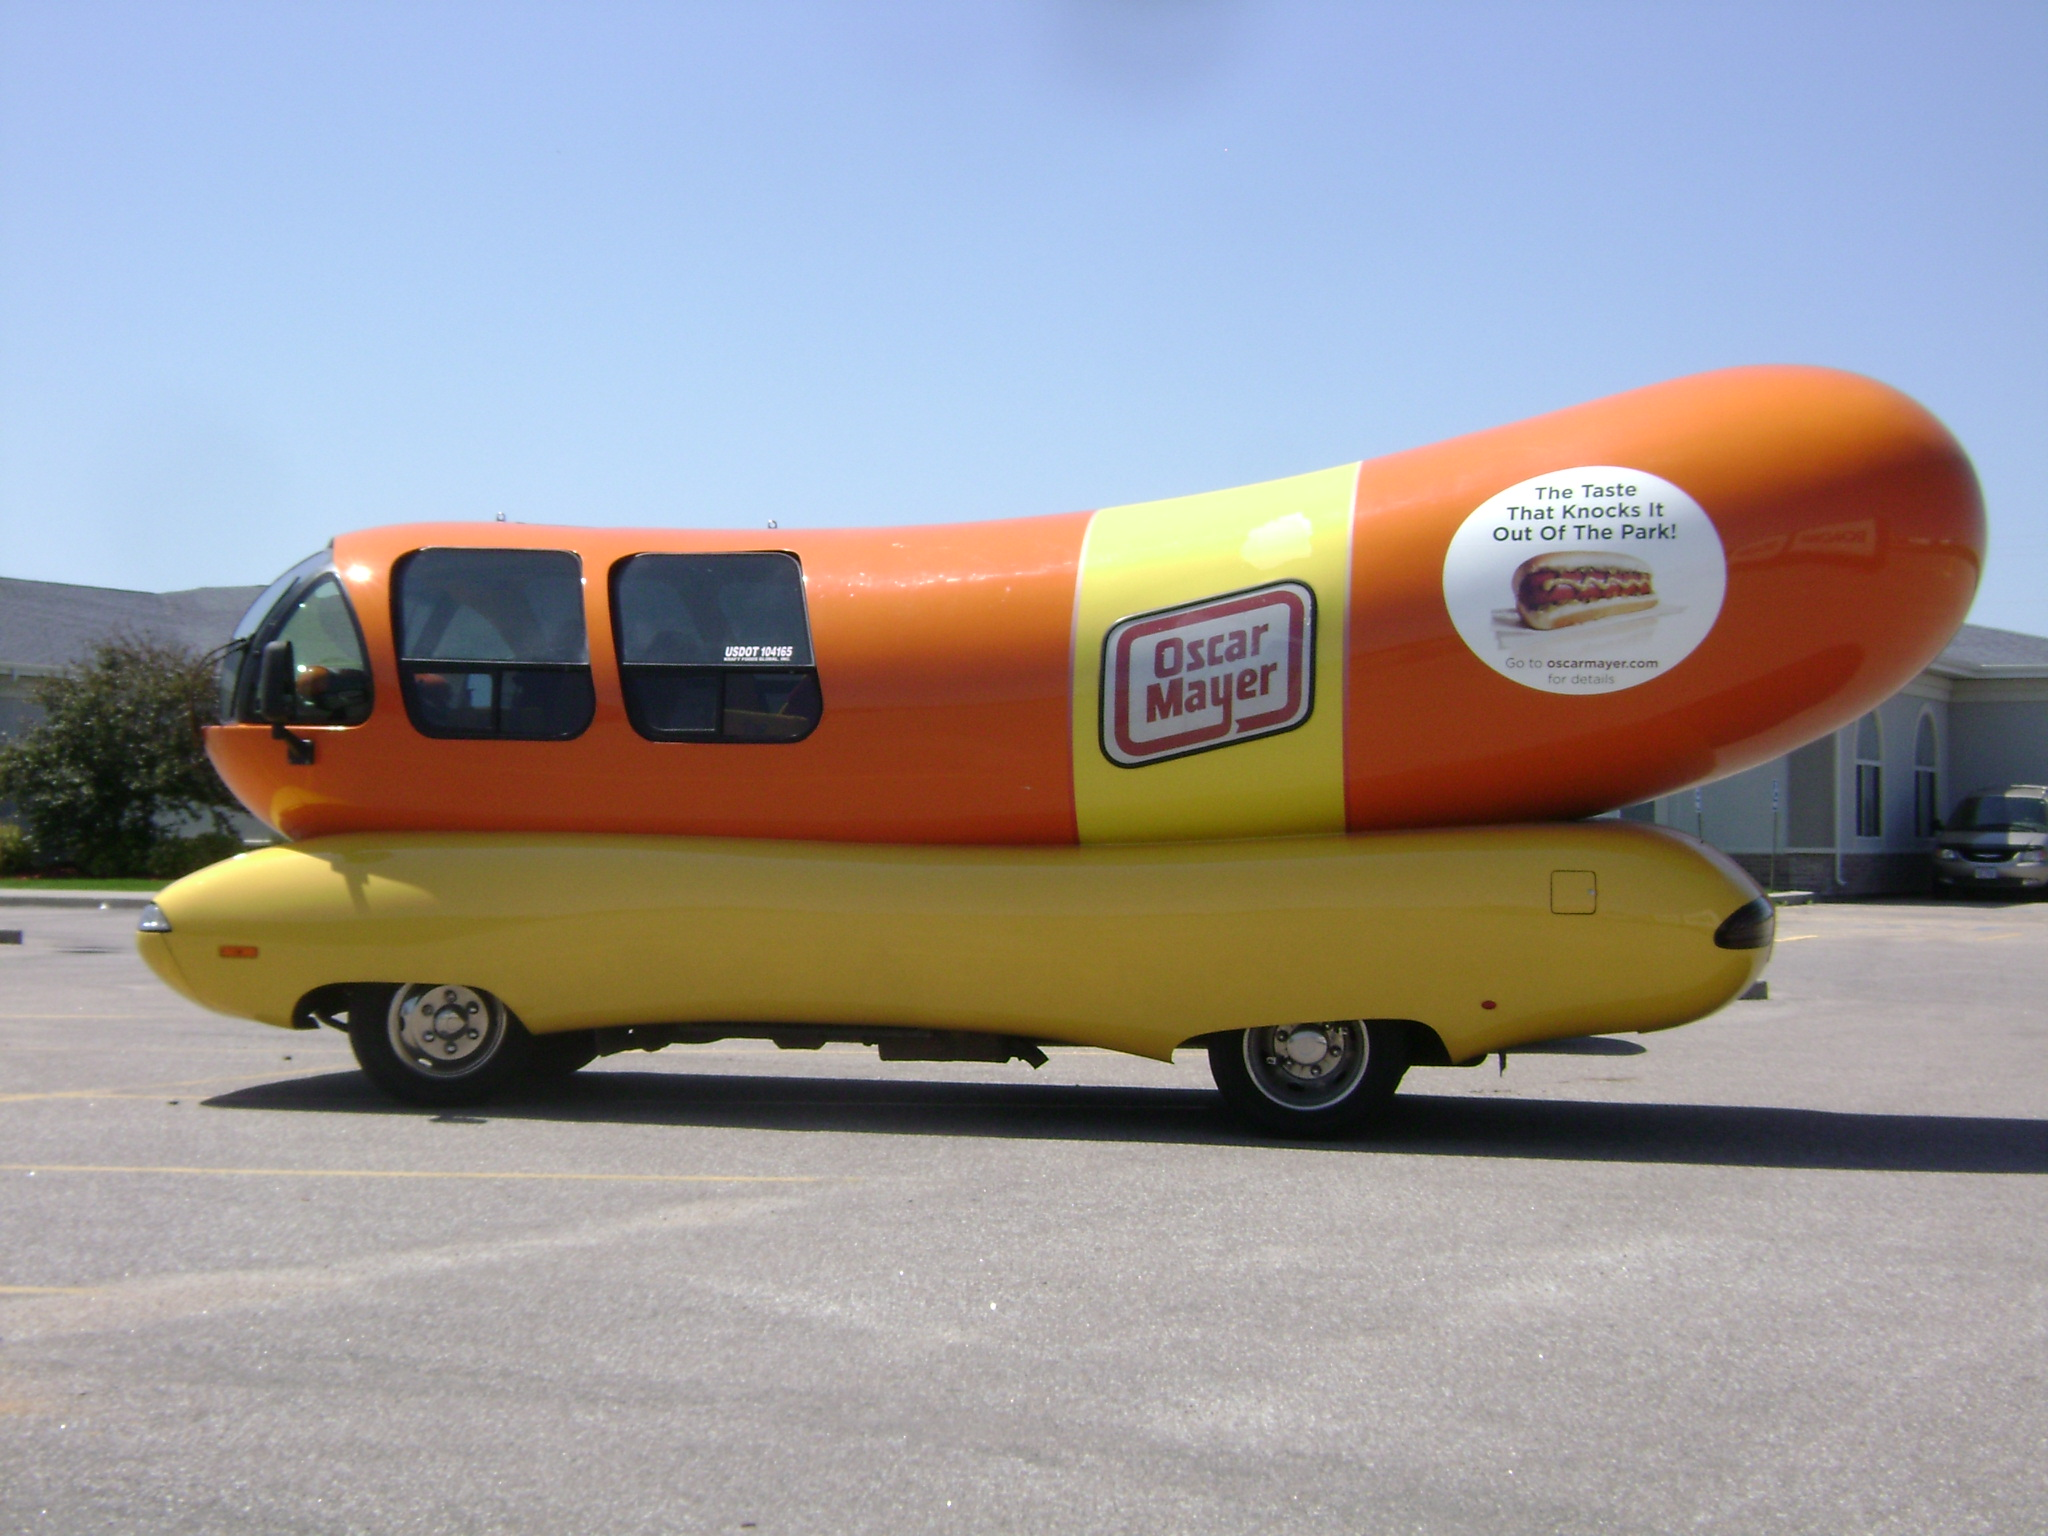 Ultimate Road Trip Highlights Pt 2 further More Sex Please Were British 2 264664 furthermore Sarah Sanders White House Press Briefing 330pm Est Livestream besides Michigan Henry Ford Museum additionally Garden Party Table Setting. on wienermobile house